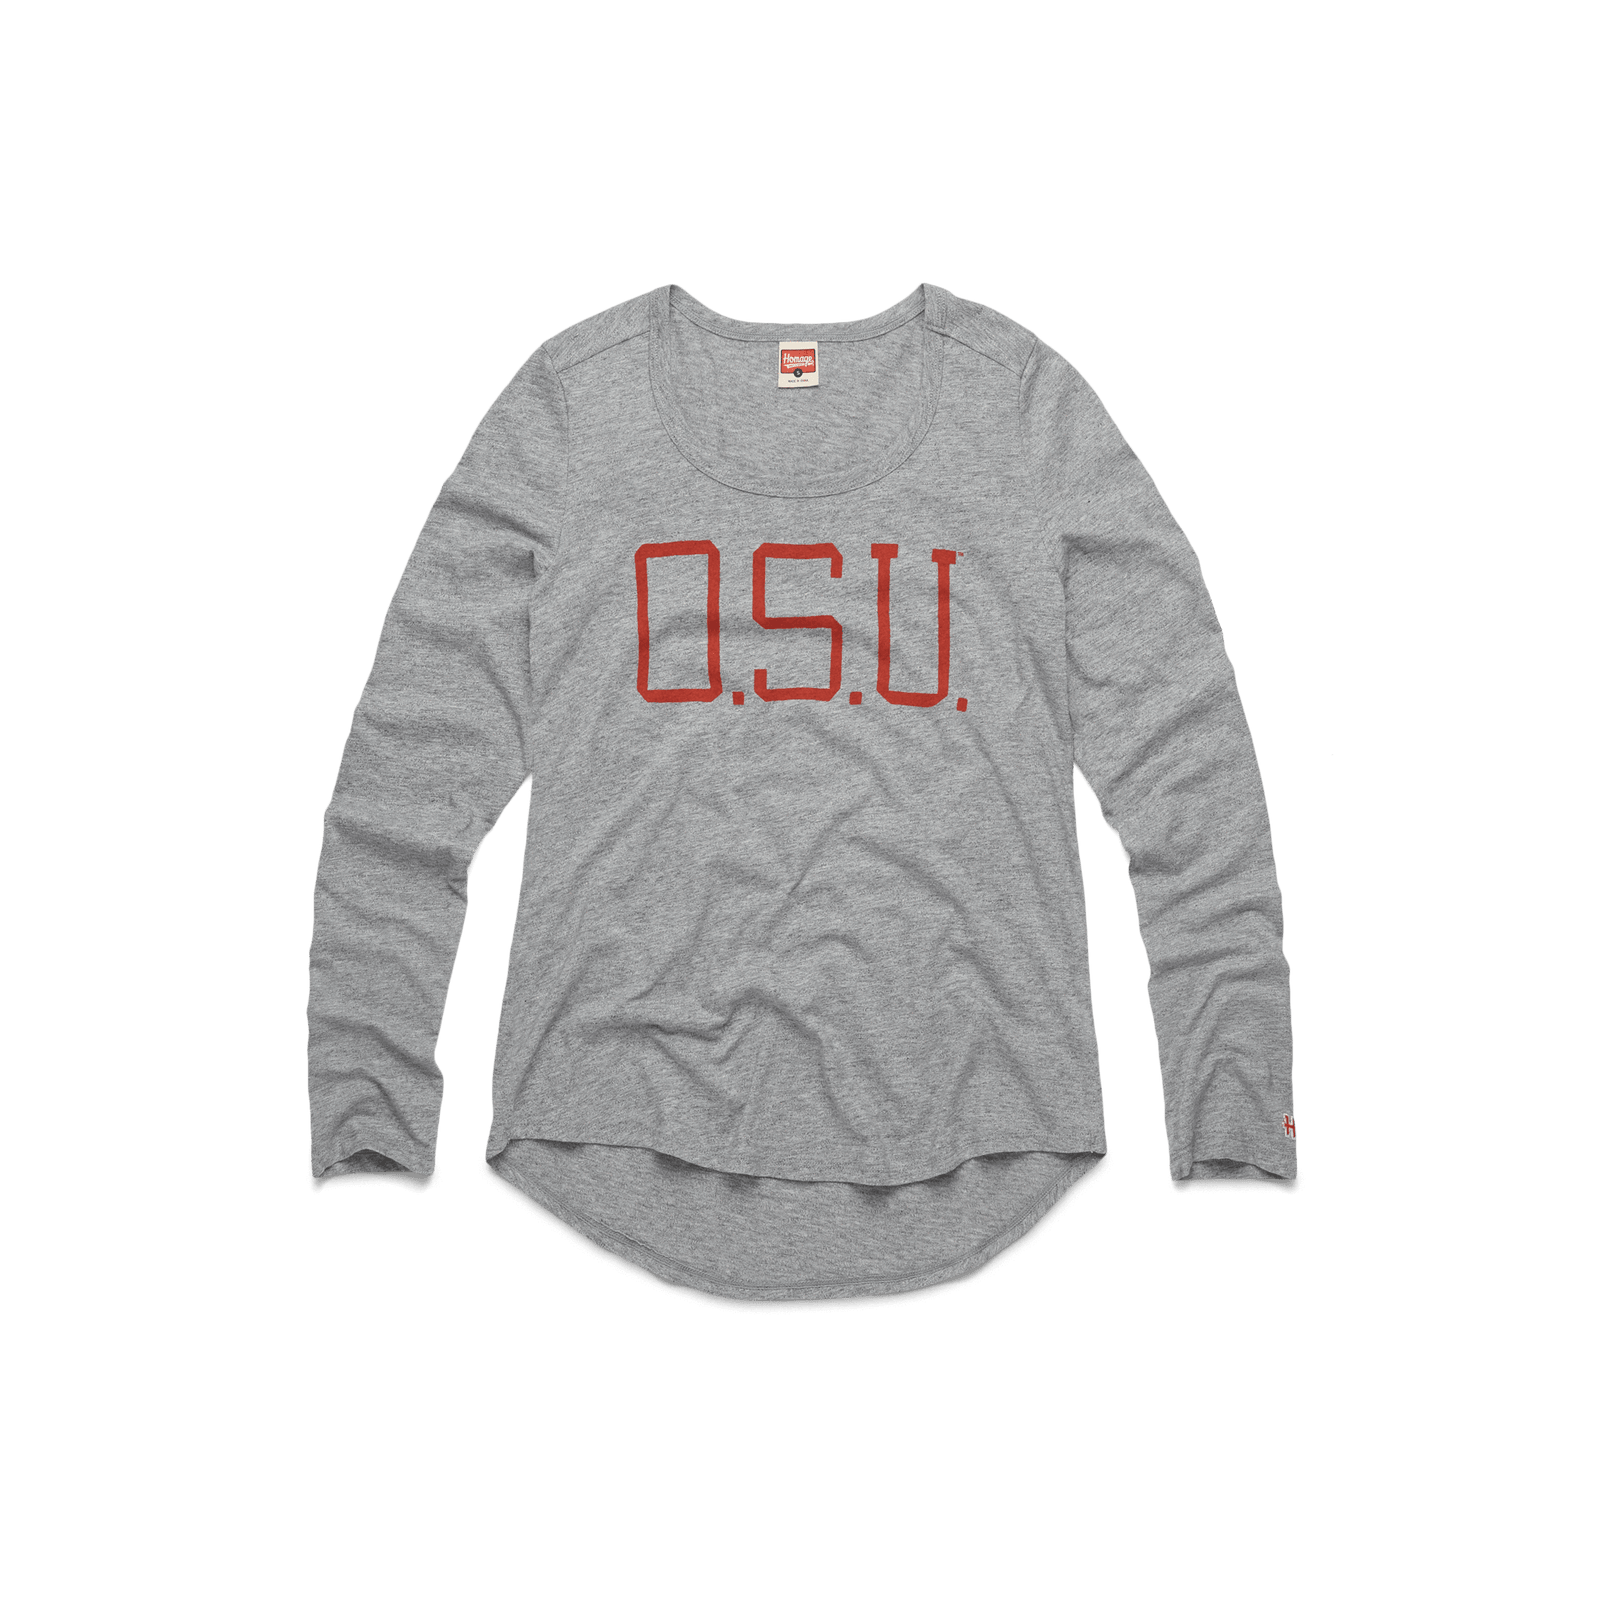 Women's O.S.U. Long Sleeve Tee